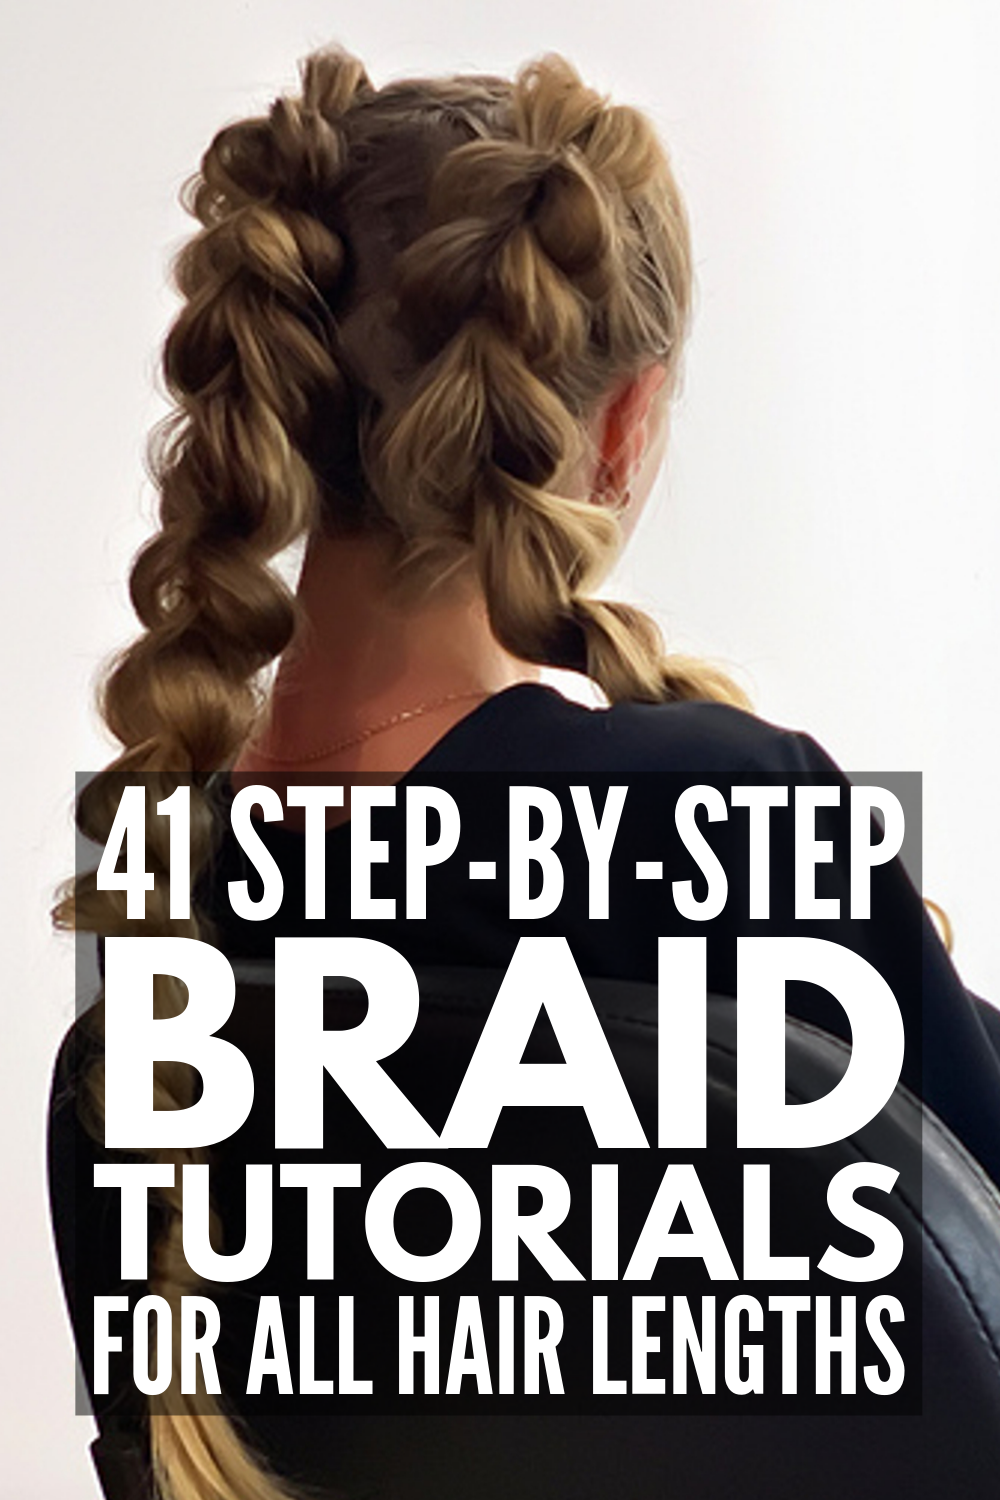 41 Gorgeous Braided Hairstyles for Every Occasion and Hair Length